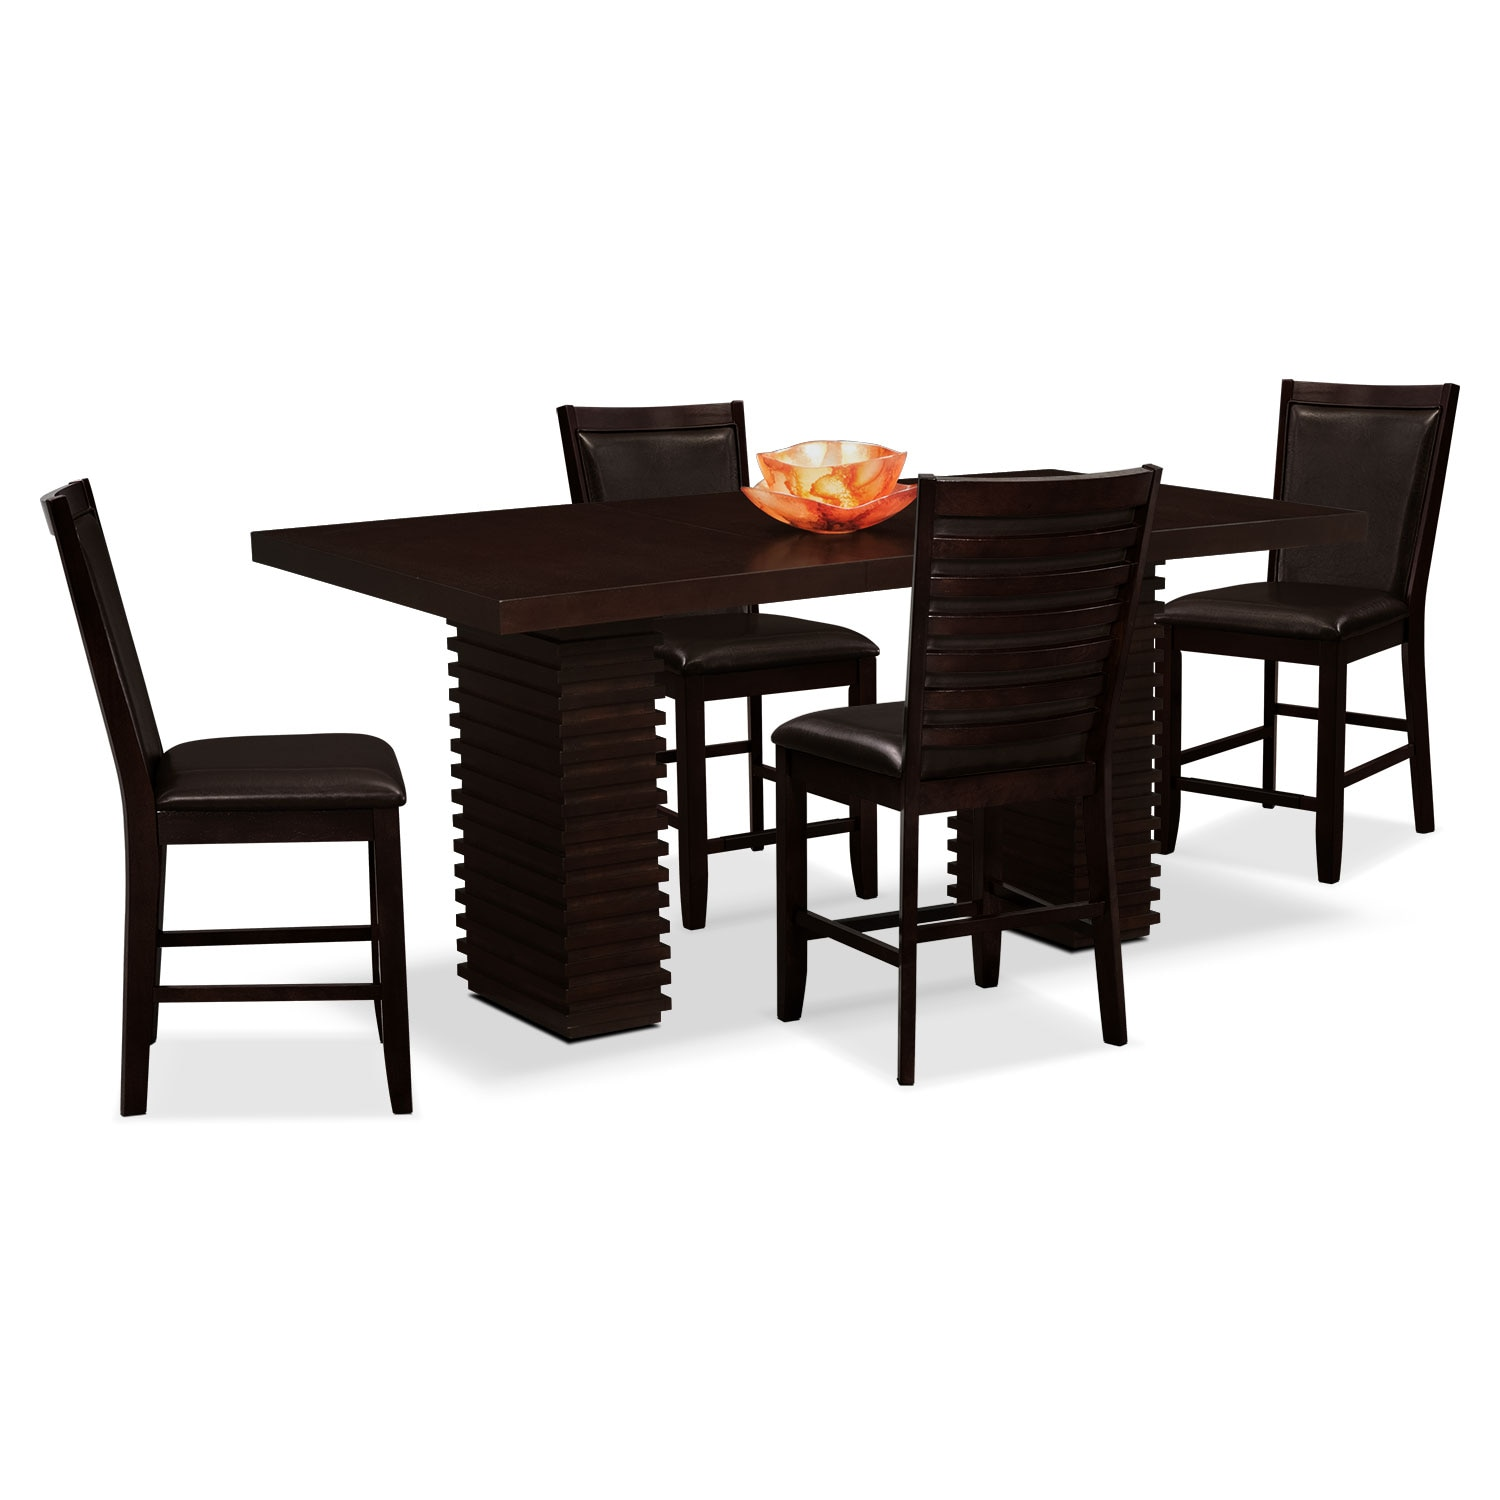 Paragon Counter Height Table And 4 Chairs Brown American Signature Furniture